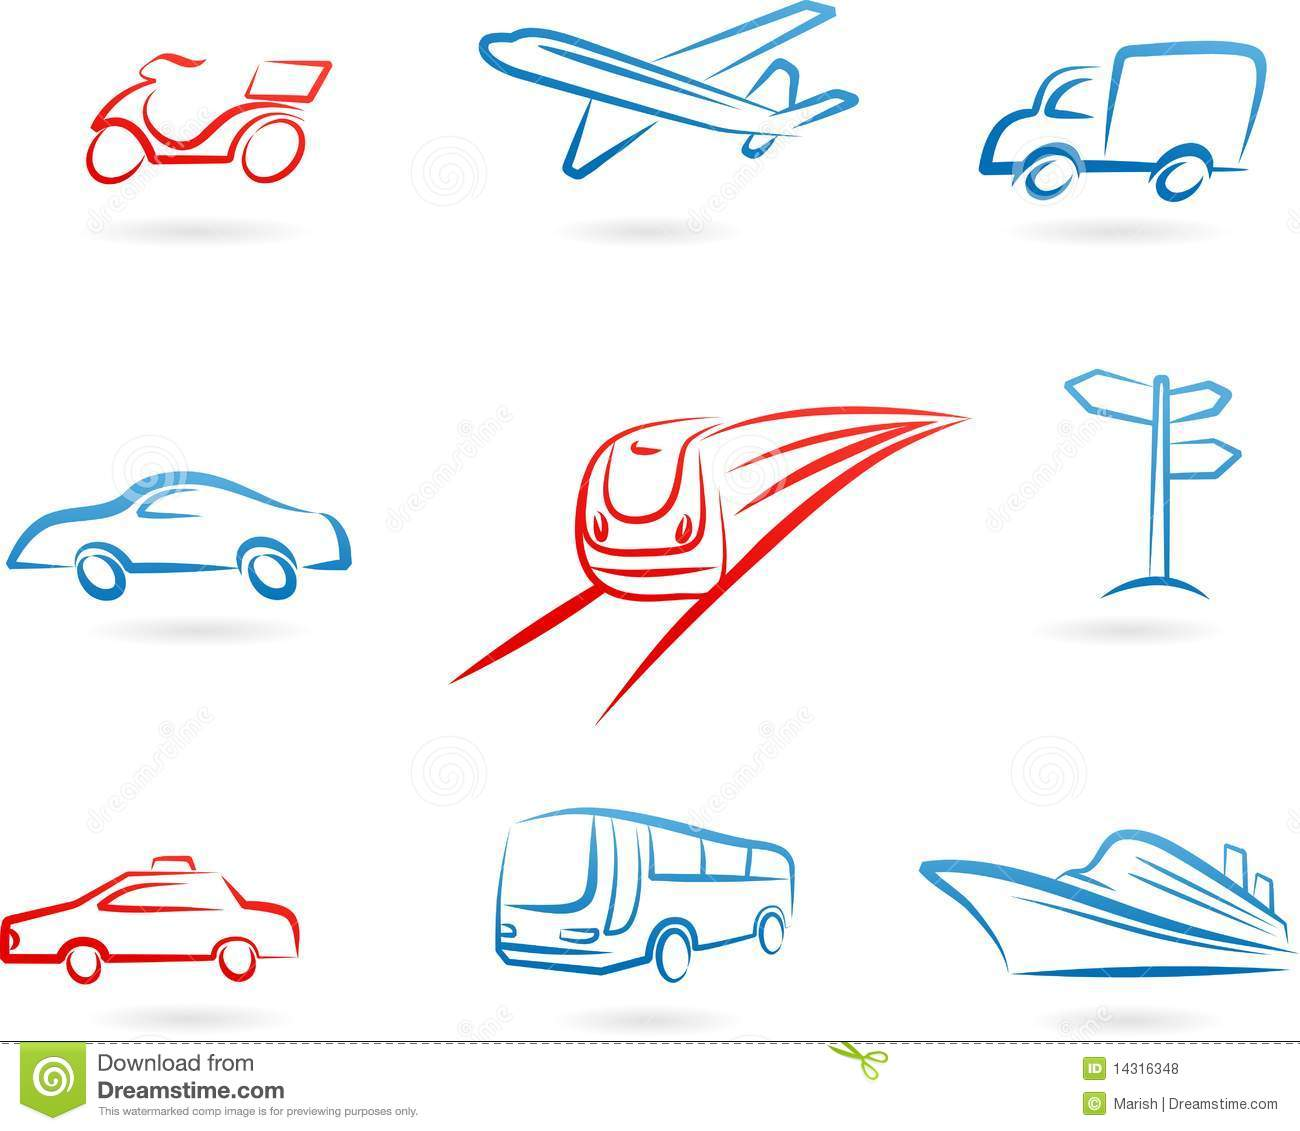 Transport concept icon set